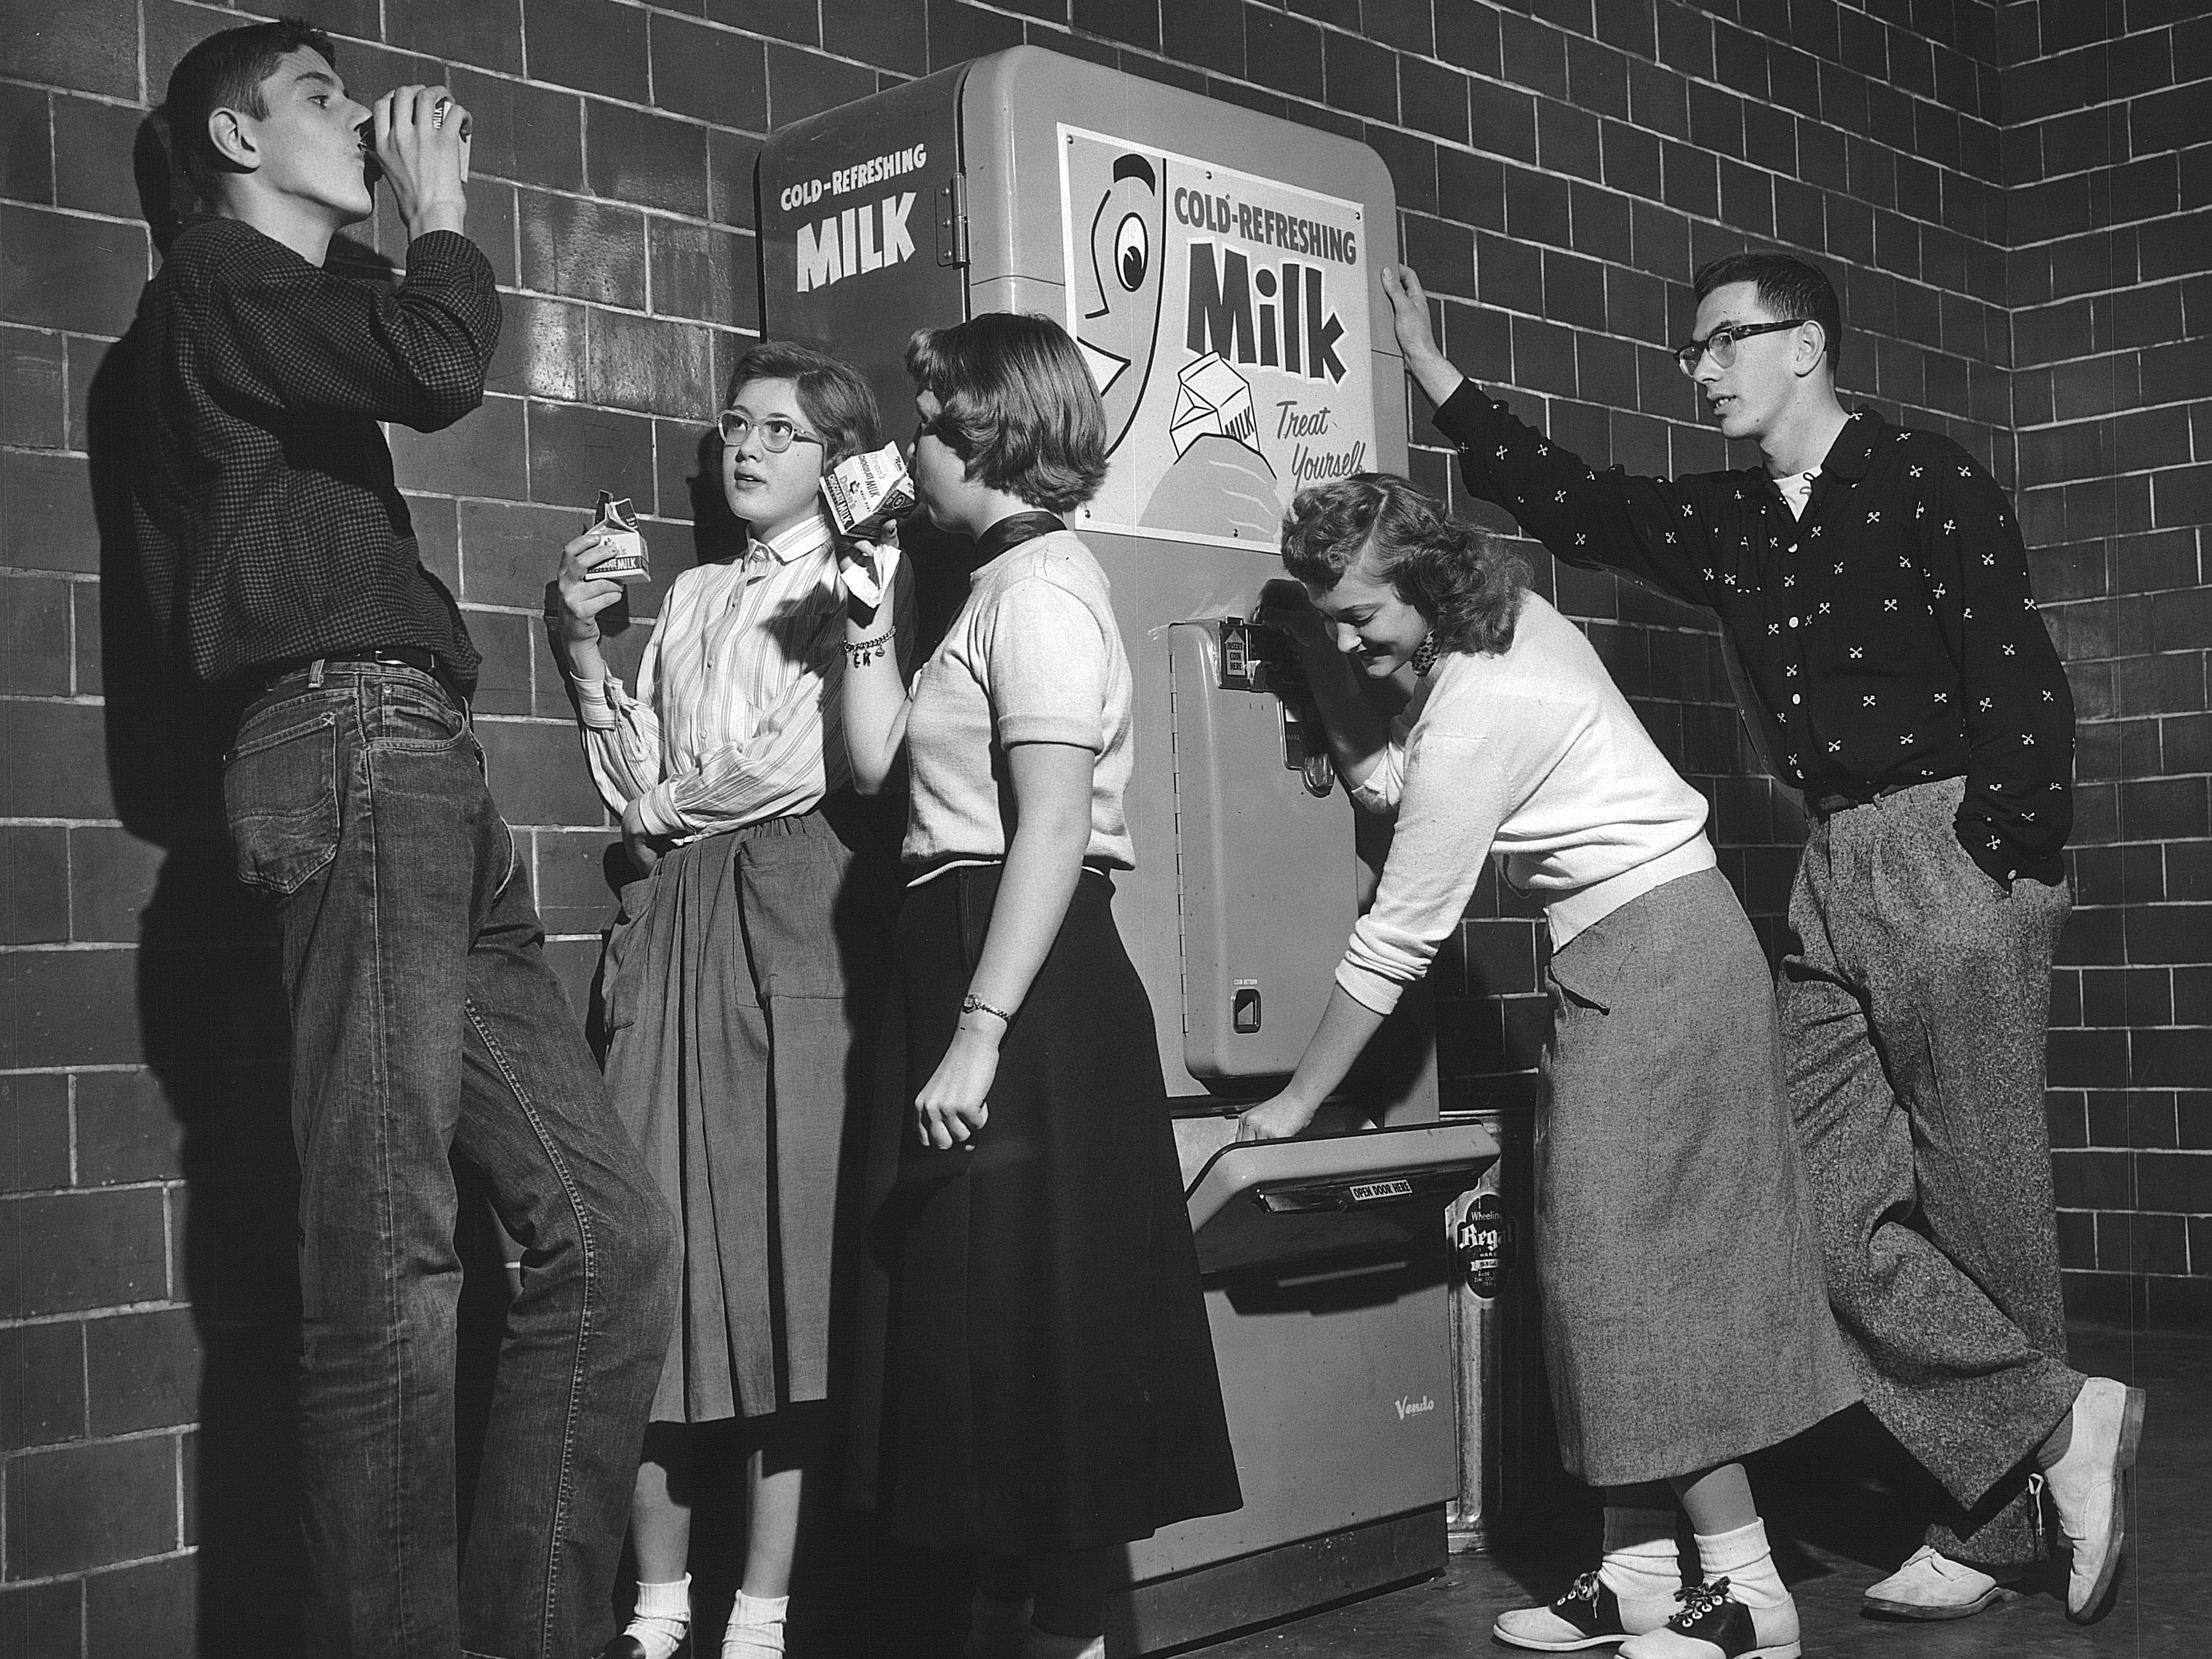 In the 1950s, milk gained in popularity when cartons began to replace glass bottles making it possible to use vending machines for milk.